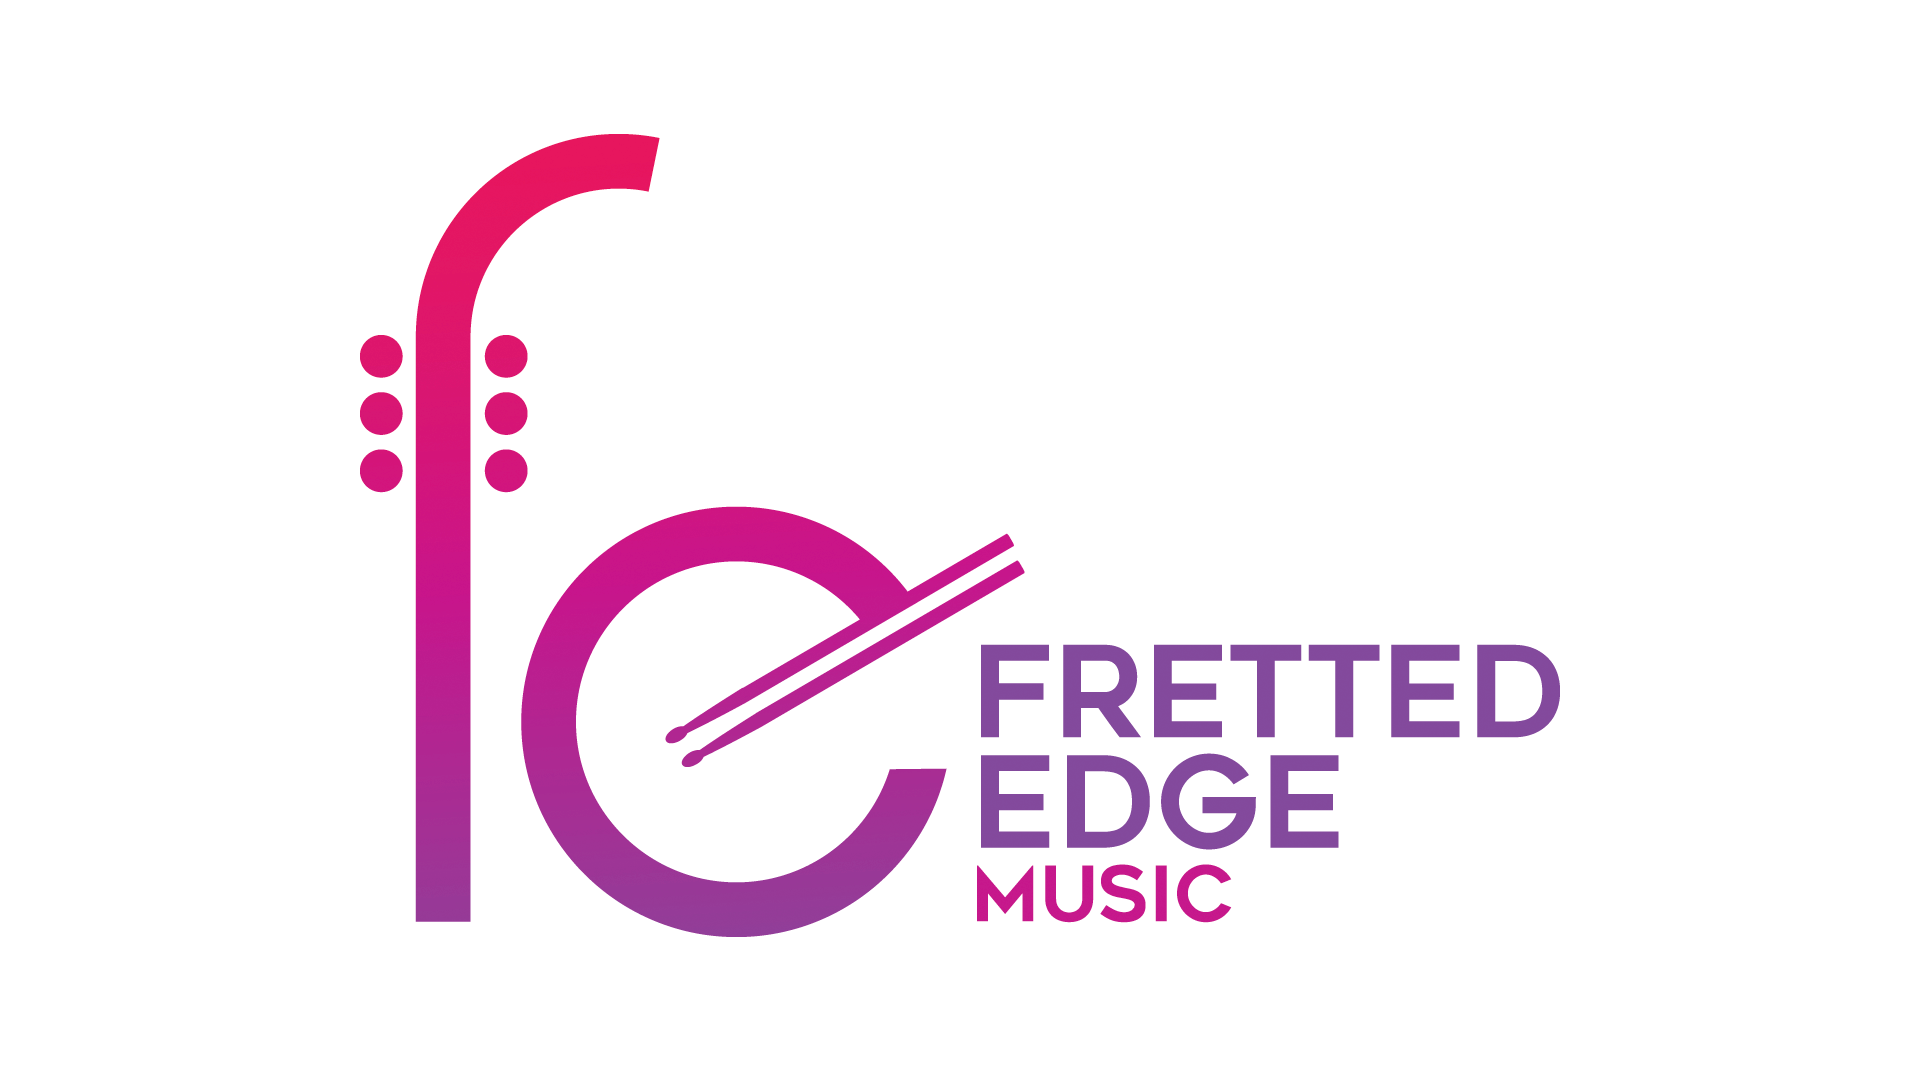 Fretted Edge Music logo